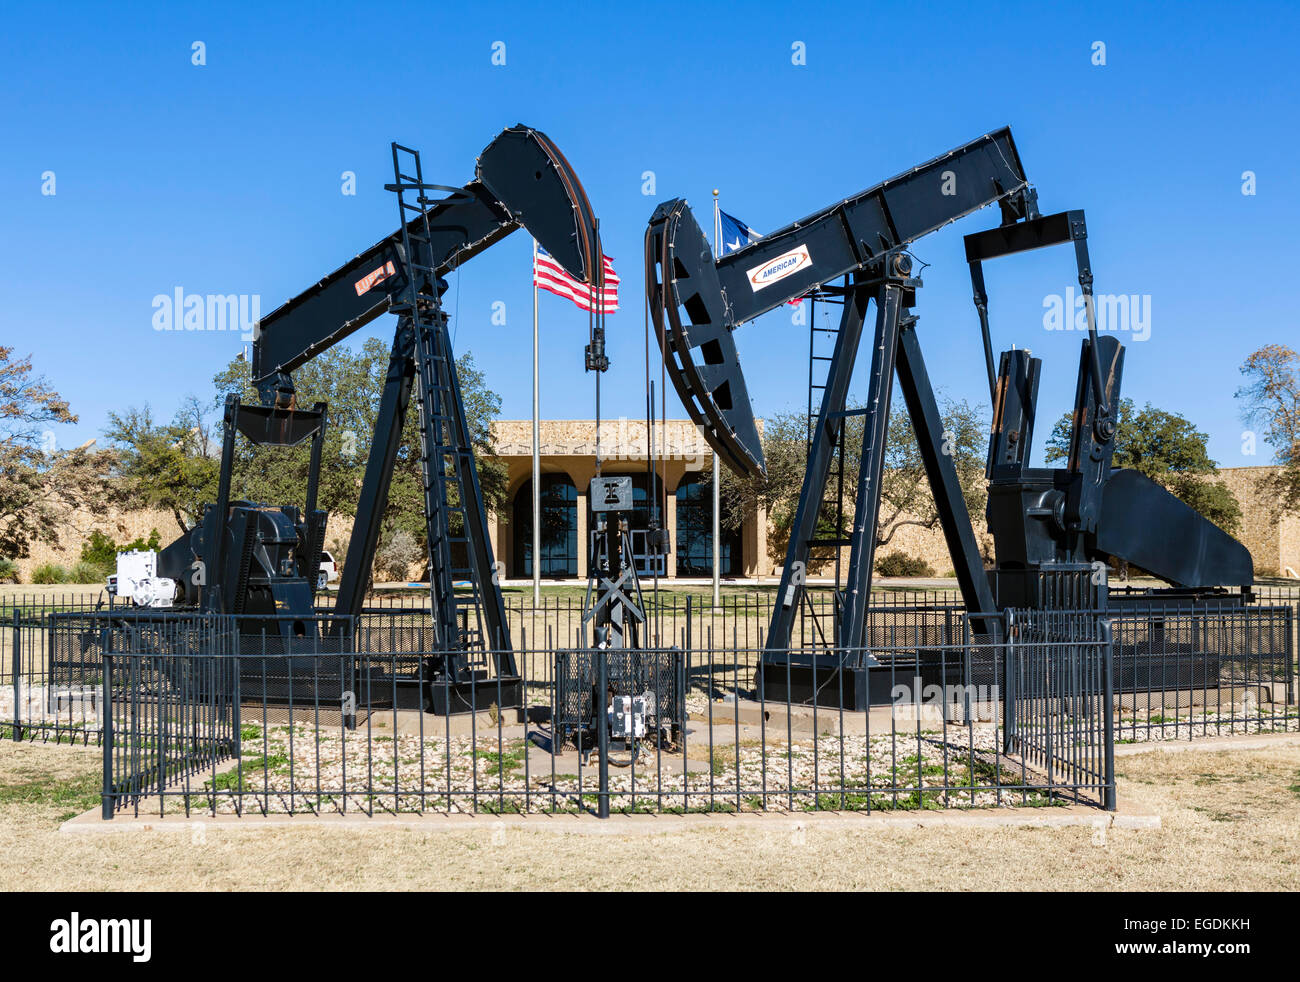 Pumpjacks in front of the Permian Basin Petroleum Museum, Midland, Texas, USA - Stock Image